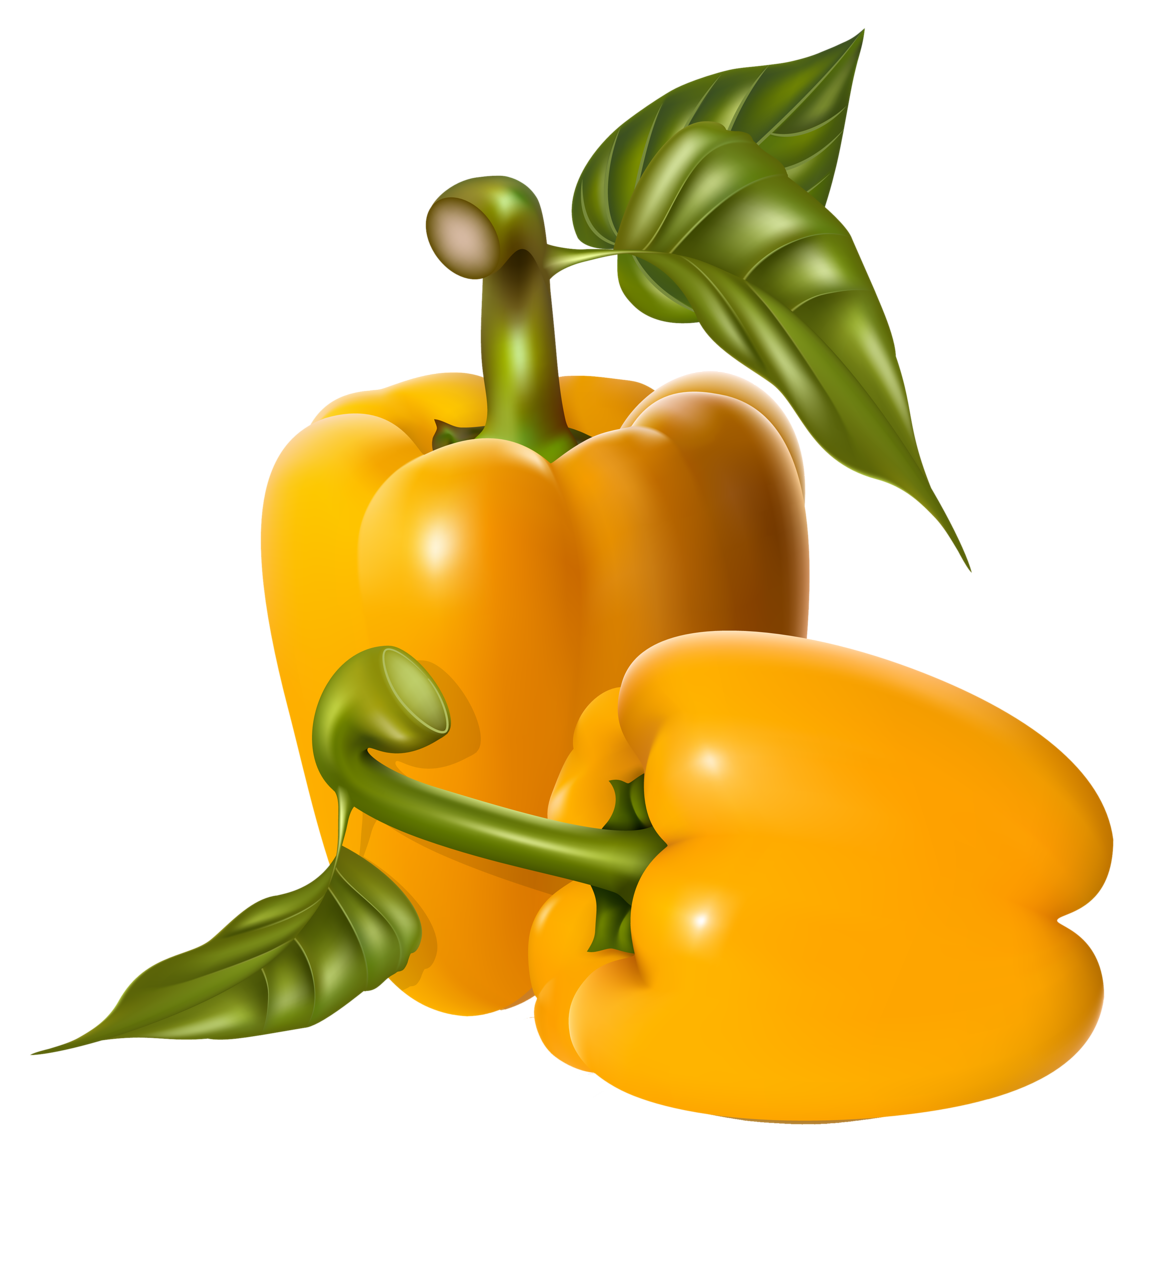 a b dcc. Veggies clipart play kitchen graphic freeuse library